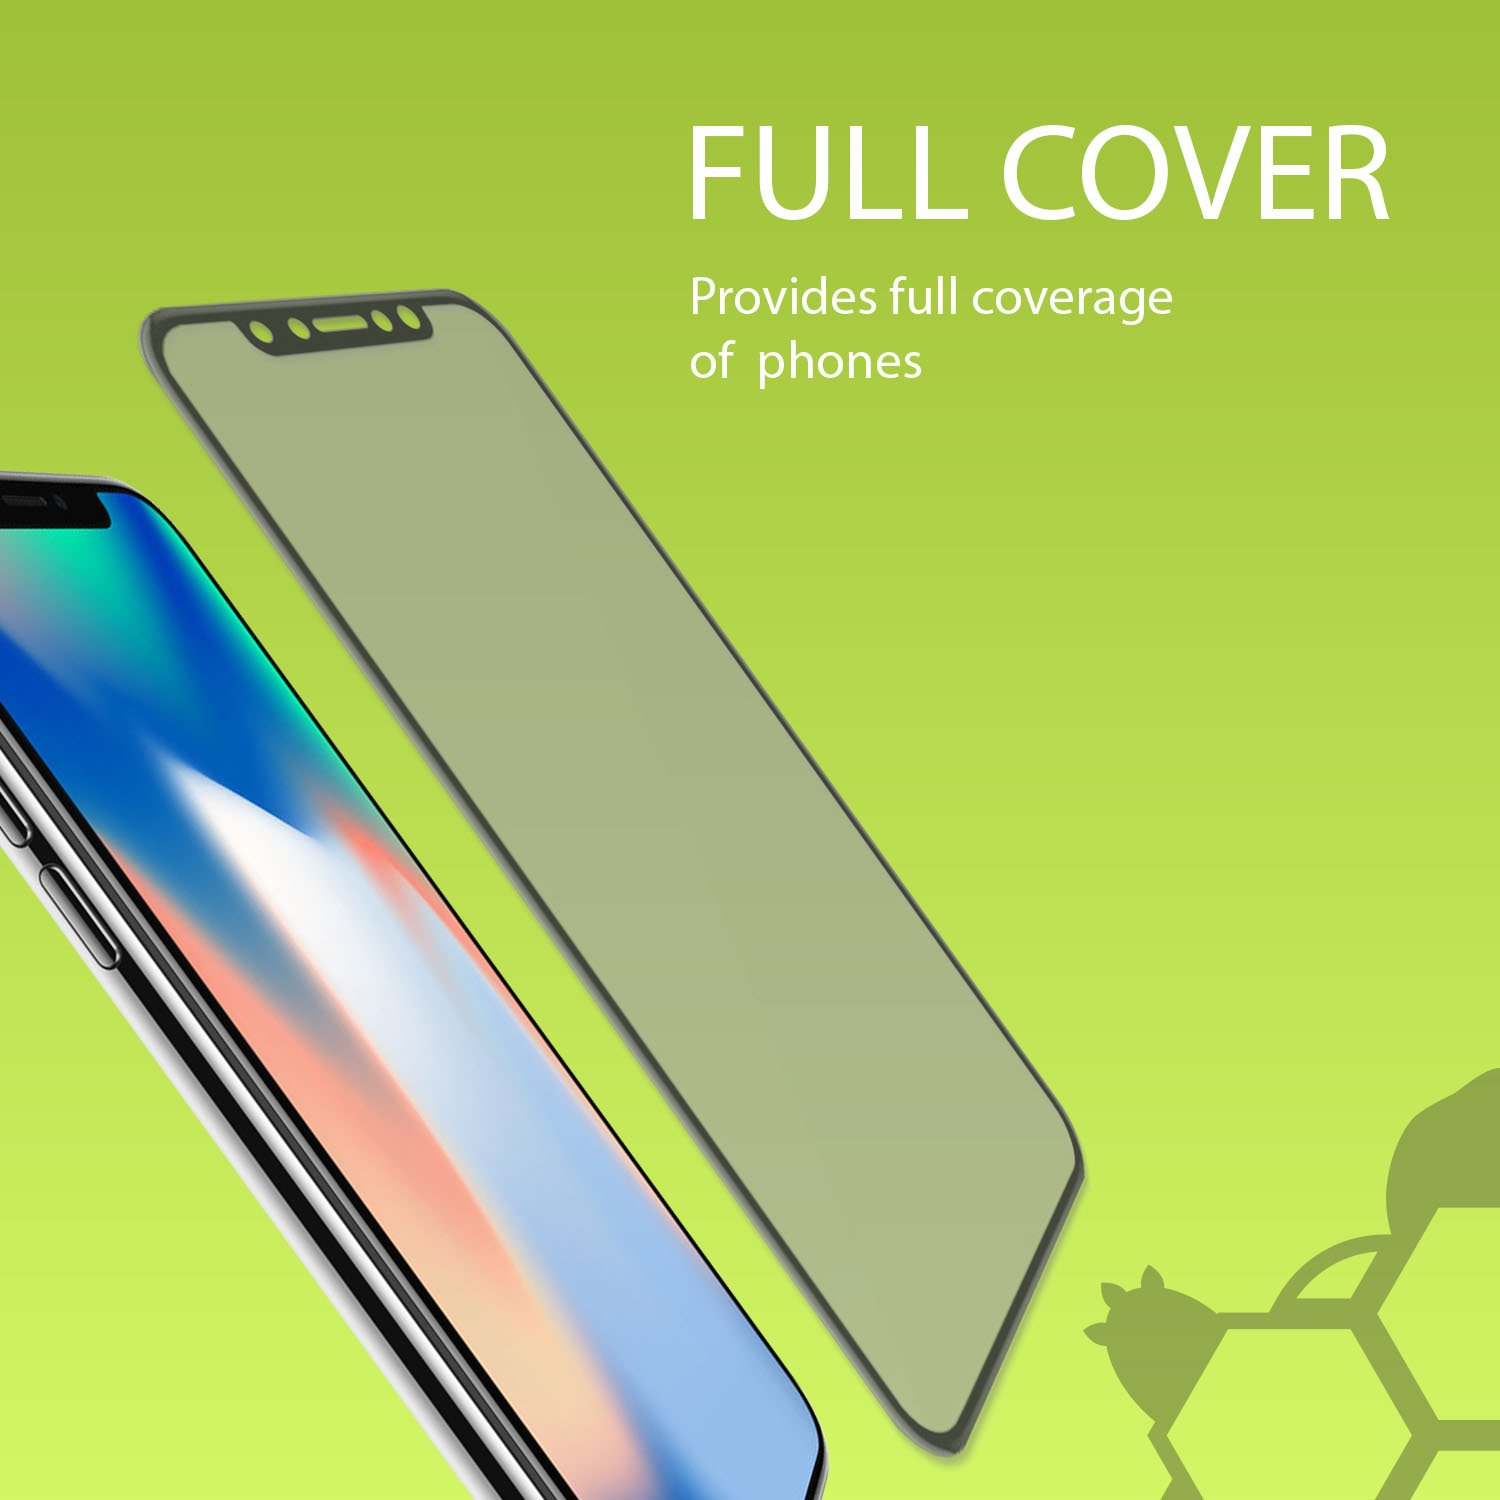 30PK - Private and Personal Protection View [3D Full Coverage] Screen Protector for Apple iPhone X, iPhone 10, Strong, Tough, and Reistant Anti Spy 3D Full Cover Tempered Glass by TortugaArmor by TortugaArmor (Image #2)